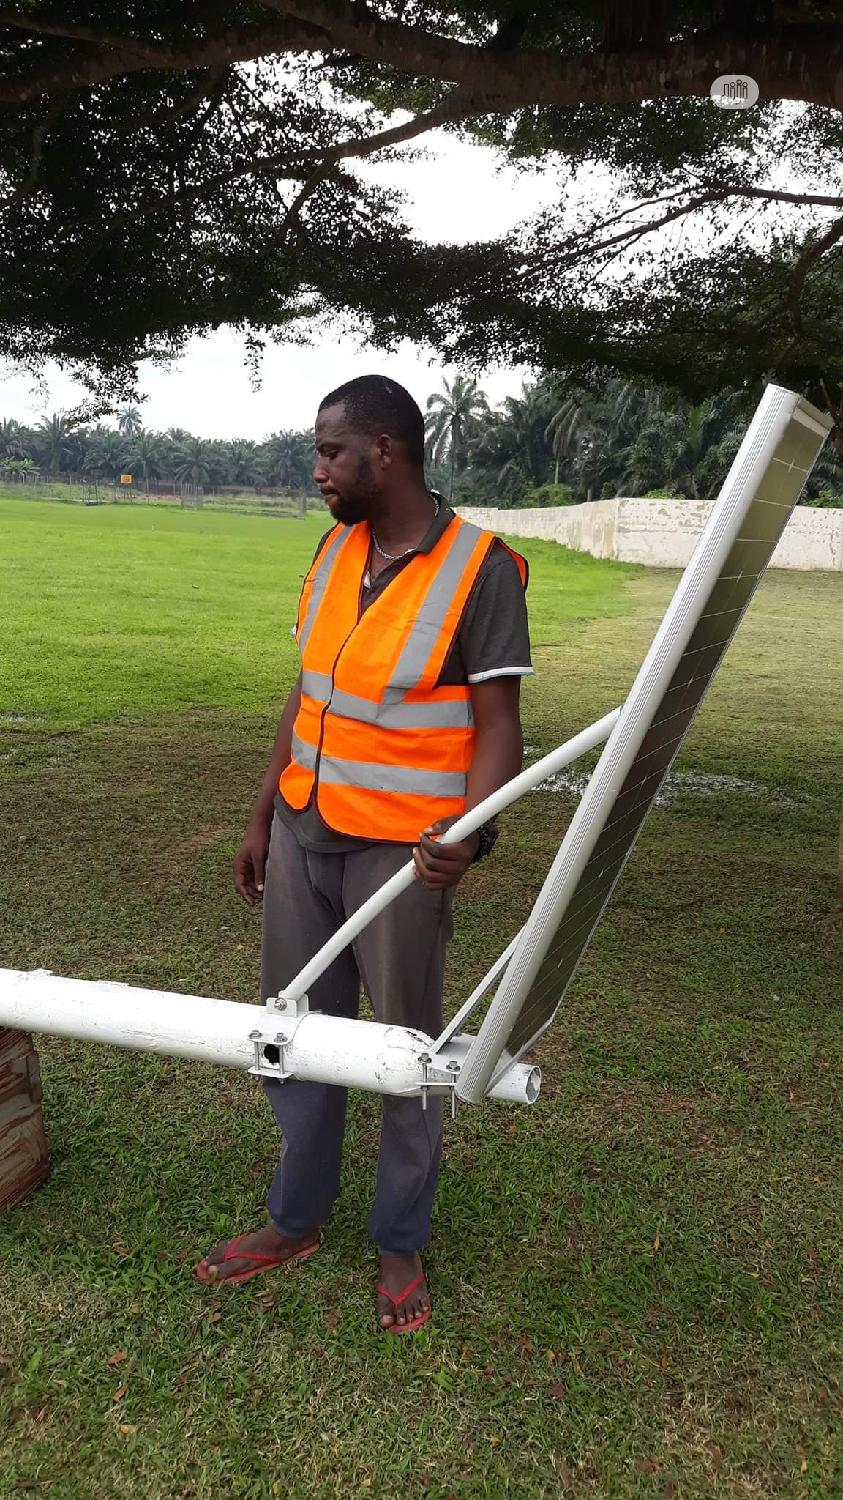 60w All In One Solar Street Light With CCTV Camera   Security & Surveillance for sale in Lekki, Lagos State, Nigeria